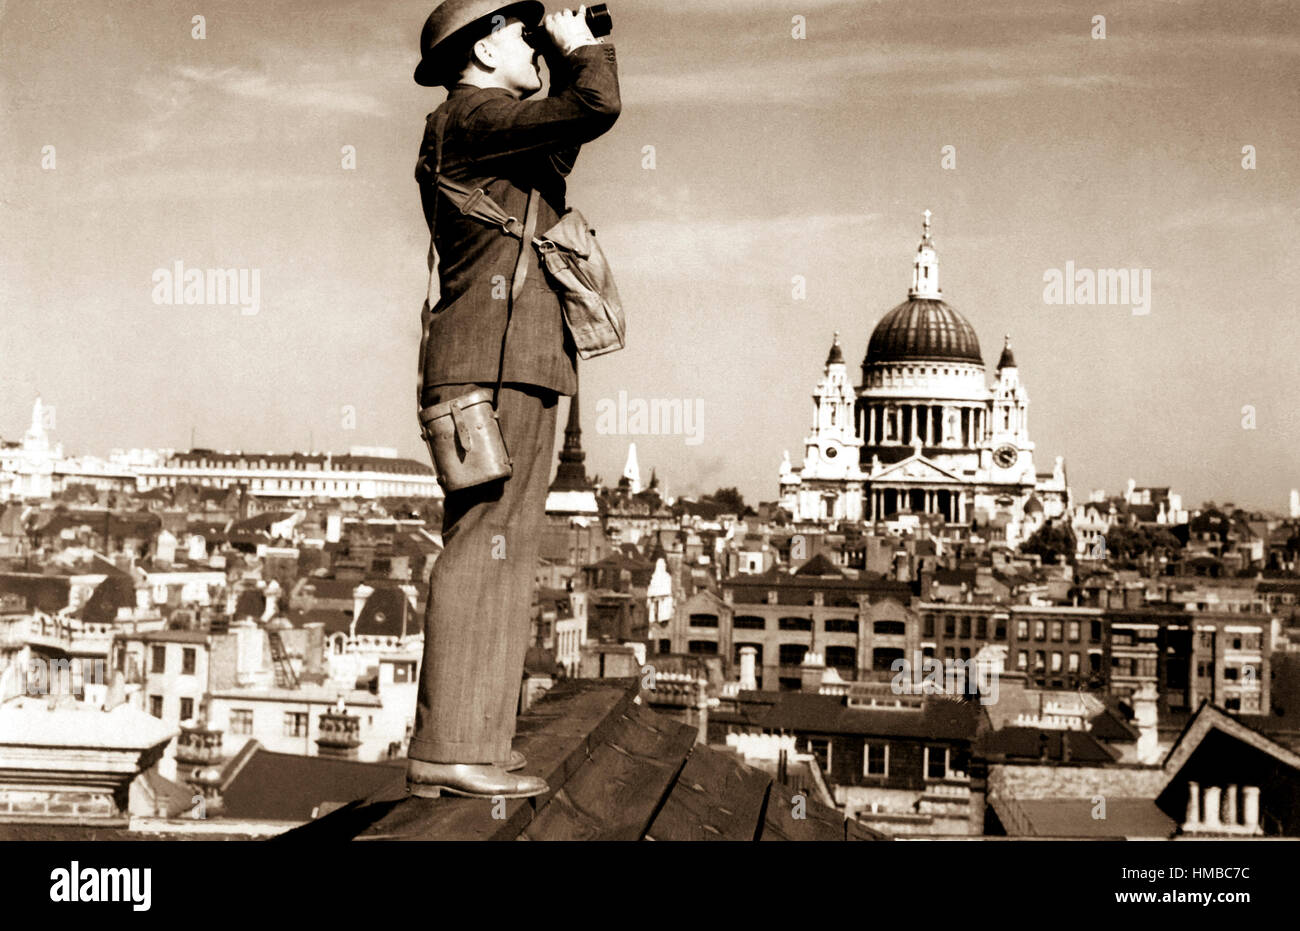 Ww2 Air Raid Warden High Resolution Stock Photography and Images - Alamy